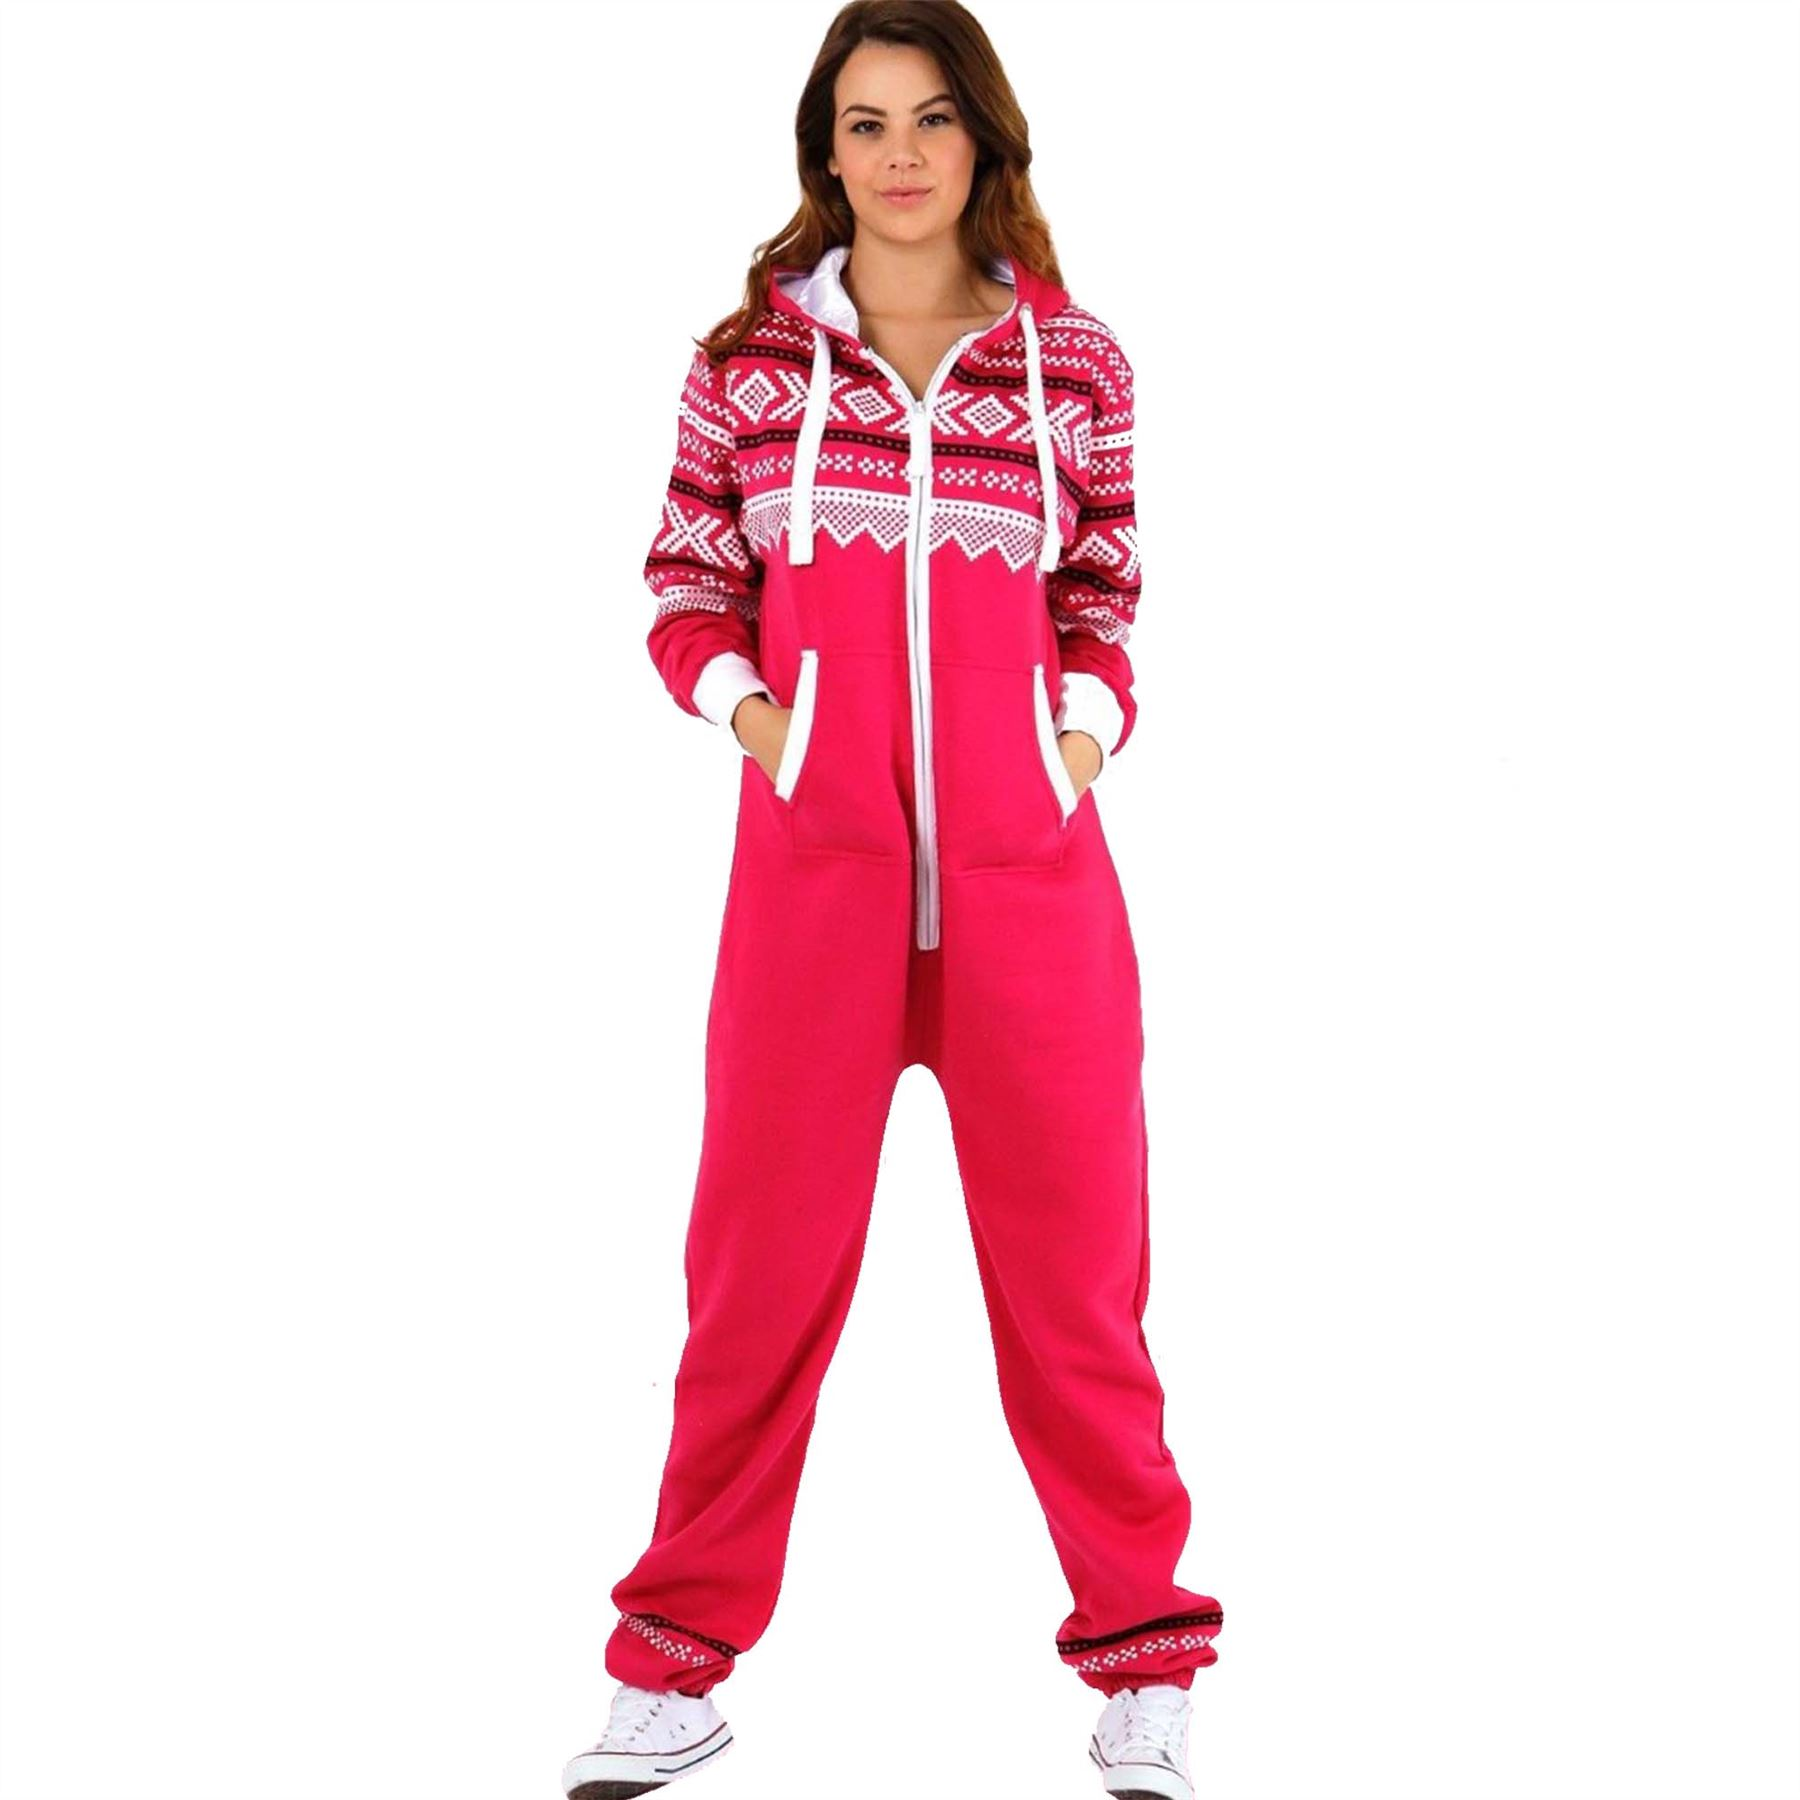 Again, these onesies are built to last, machine washable and oh so very soft and toasty. For kids and adult sizes alike, you'll find something to fit as they will supply XS, small, medium, large and plus size Tigger Onesies.